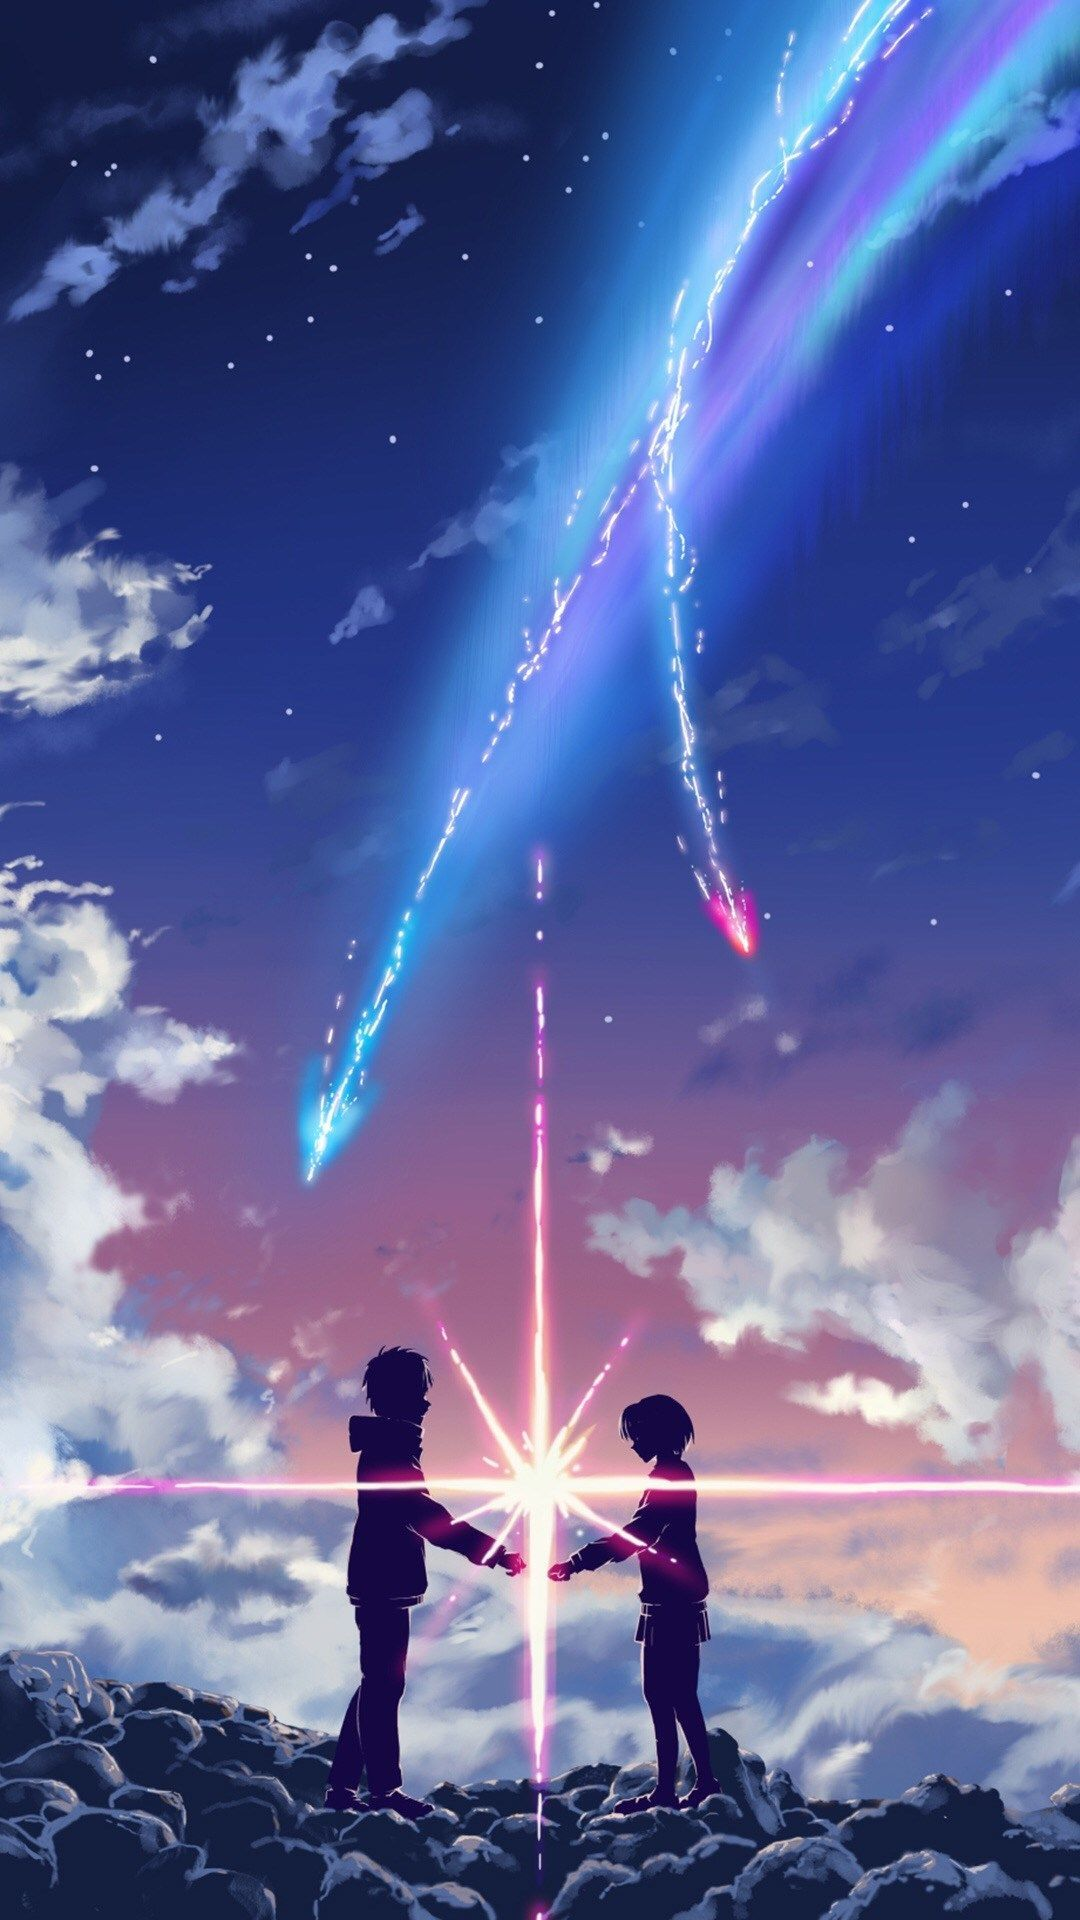 1080x1920 Your Name Movie Touching Through Space Poster